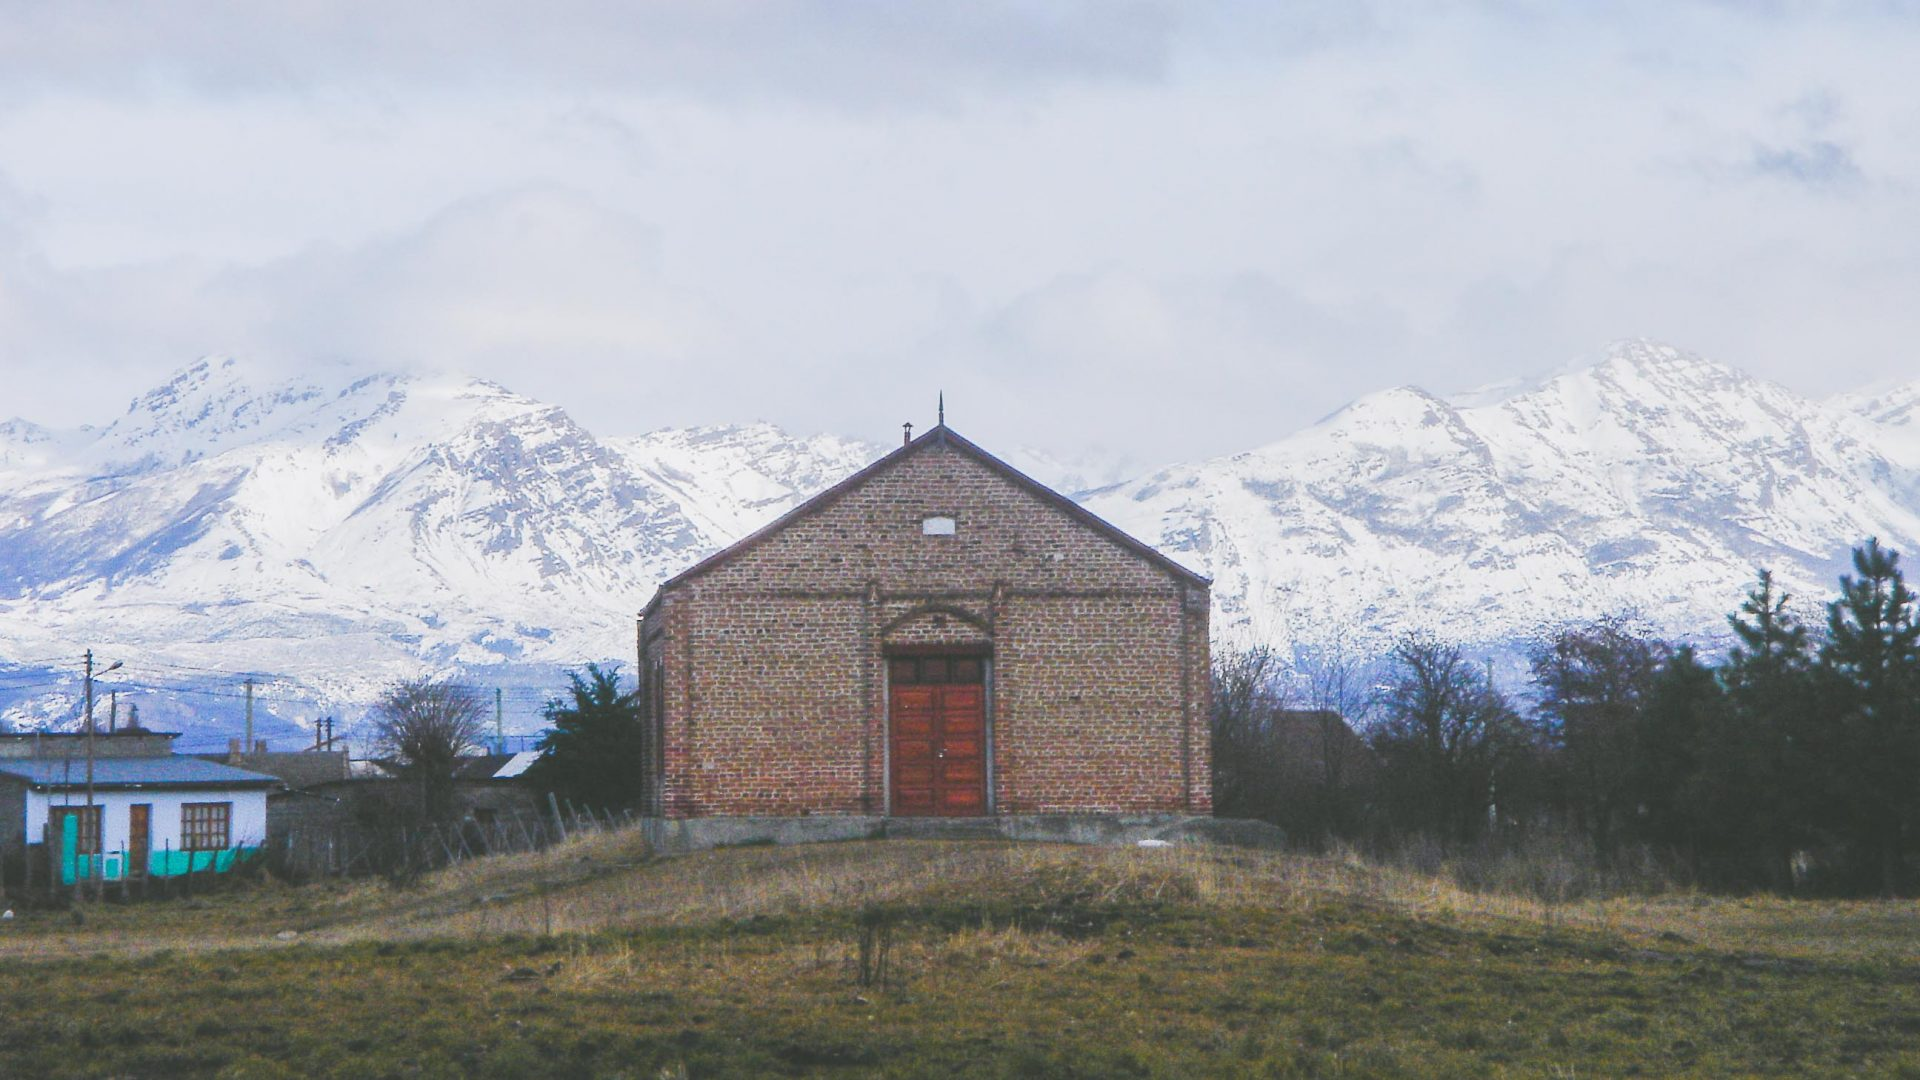 A Welsh colony in Patagonia? Yes. Welcome to the Welsh Wild West